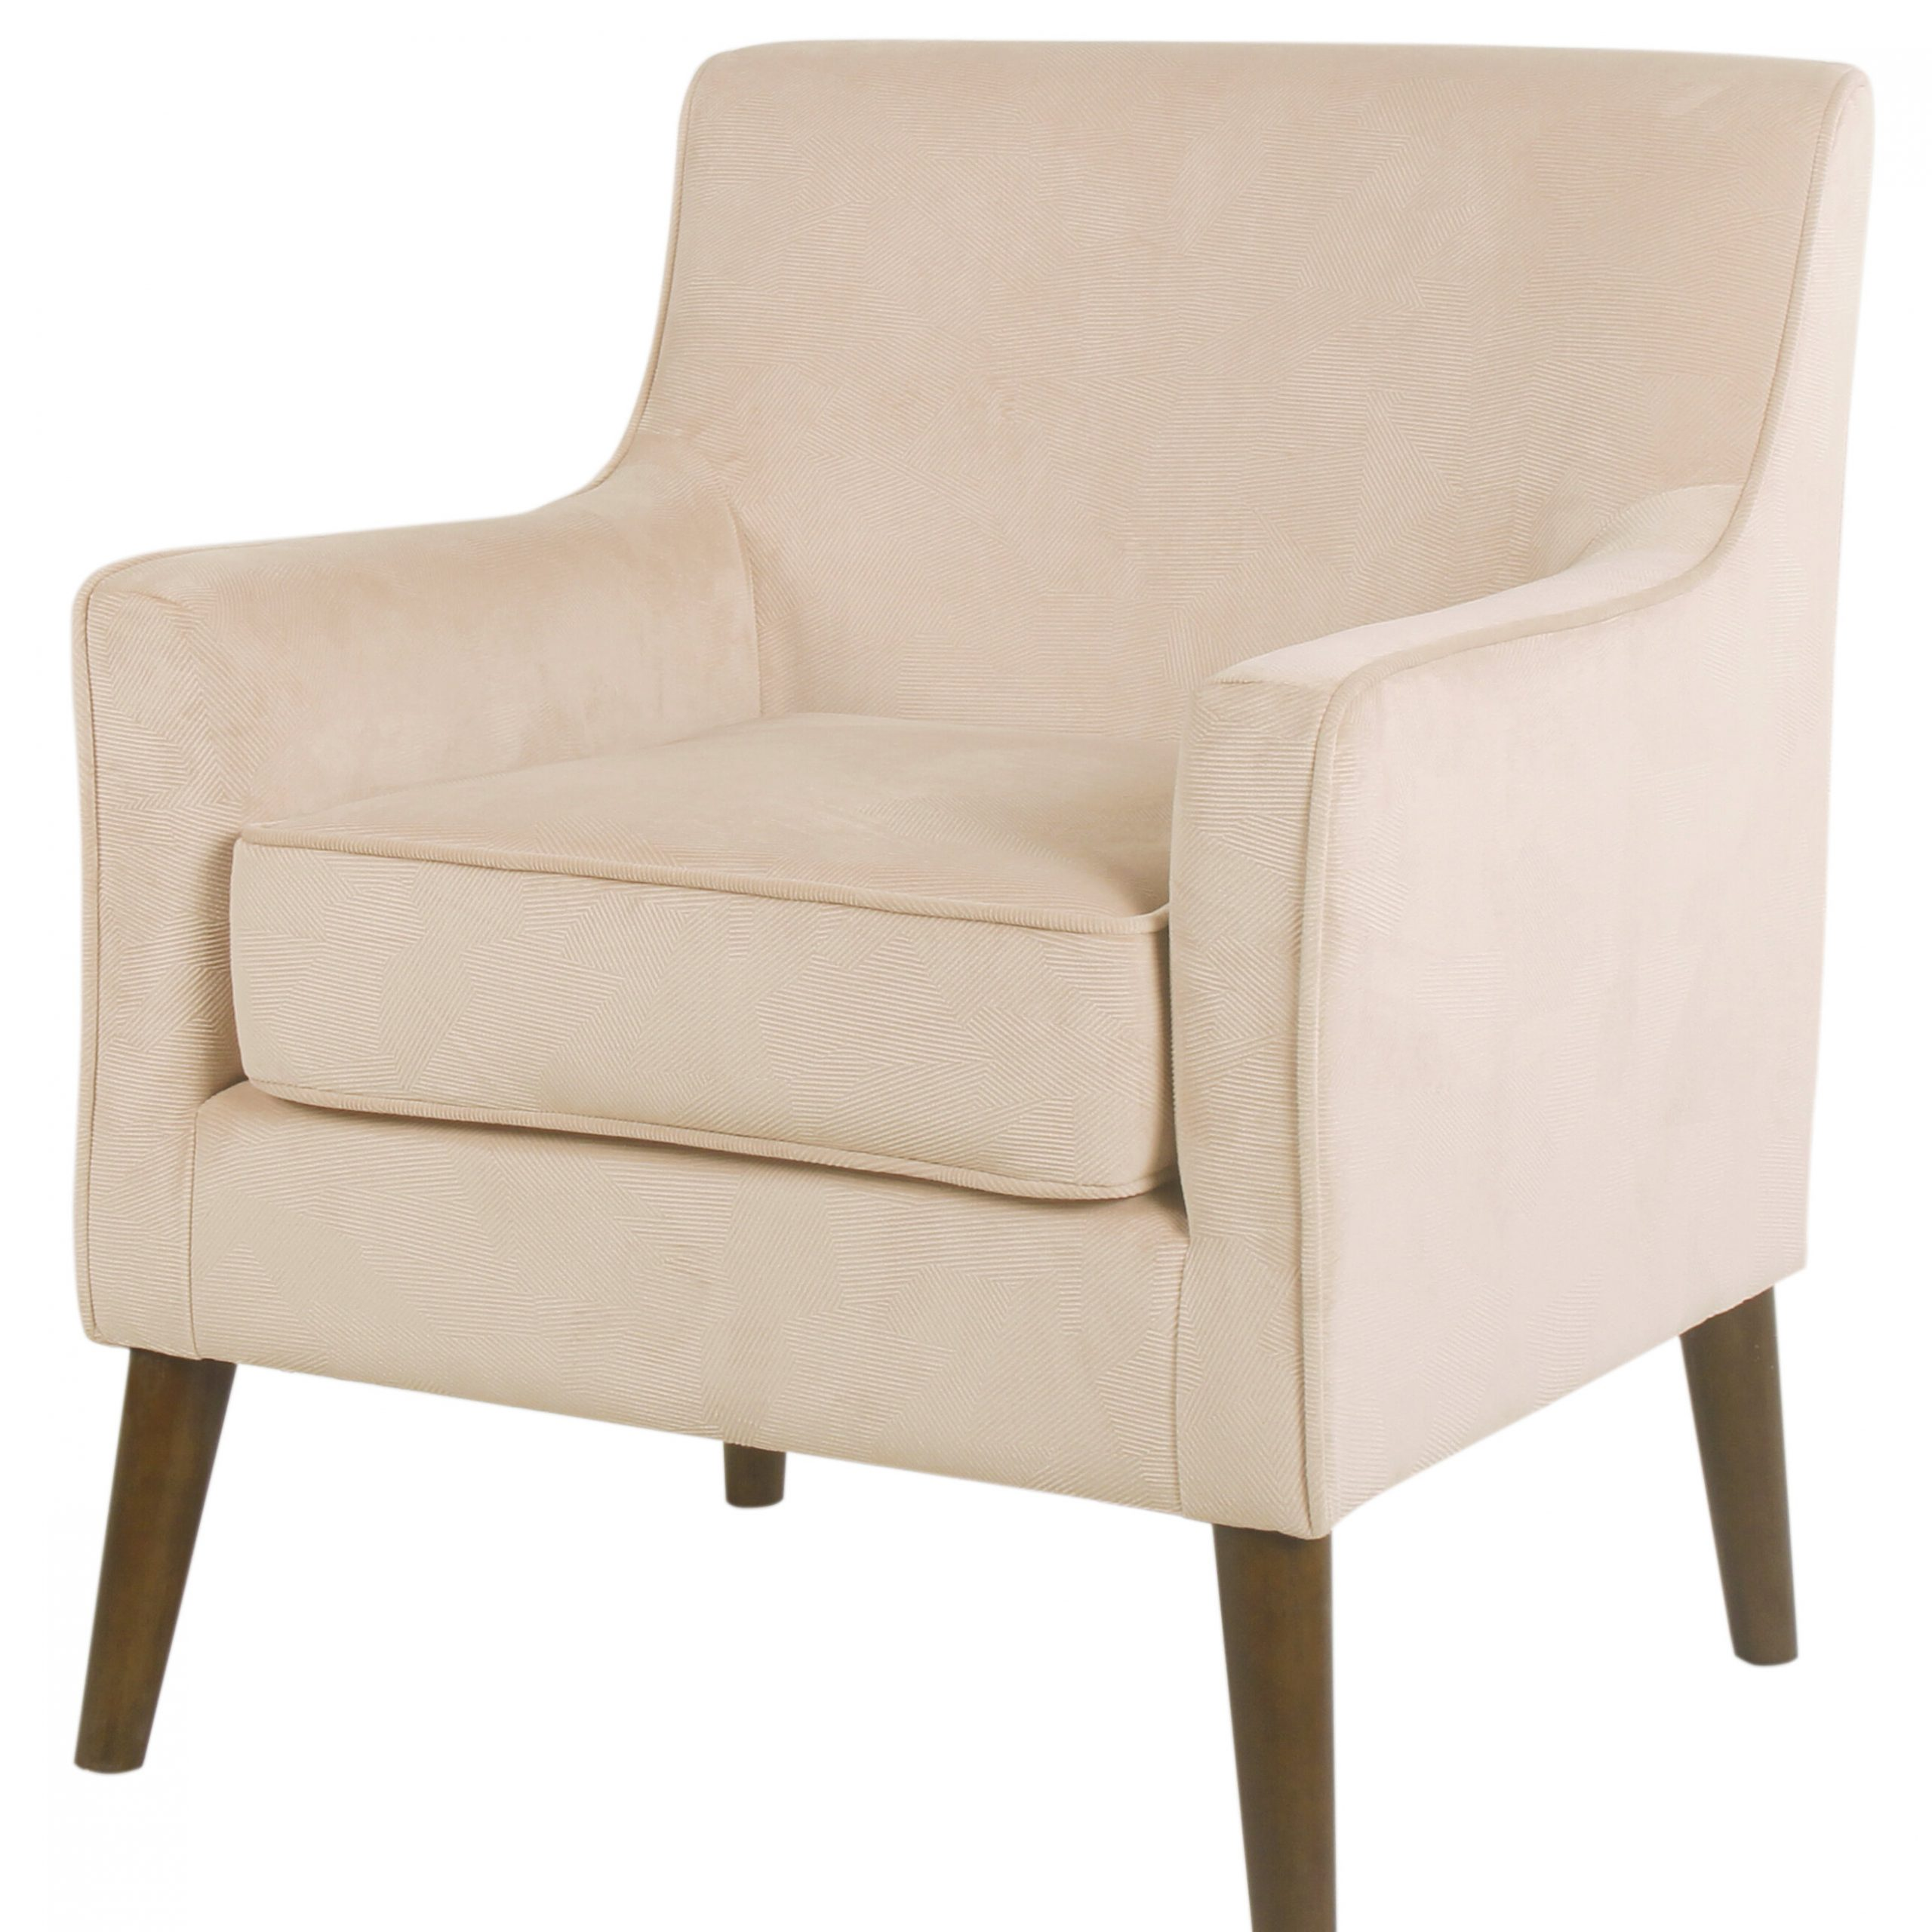 "Myia 26"" W Polyester Armchair Regarding Preferred Leia Polyester Armchairs (View 13 of 20)"